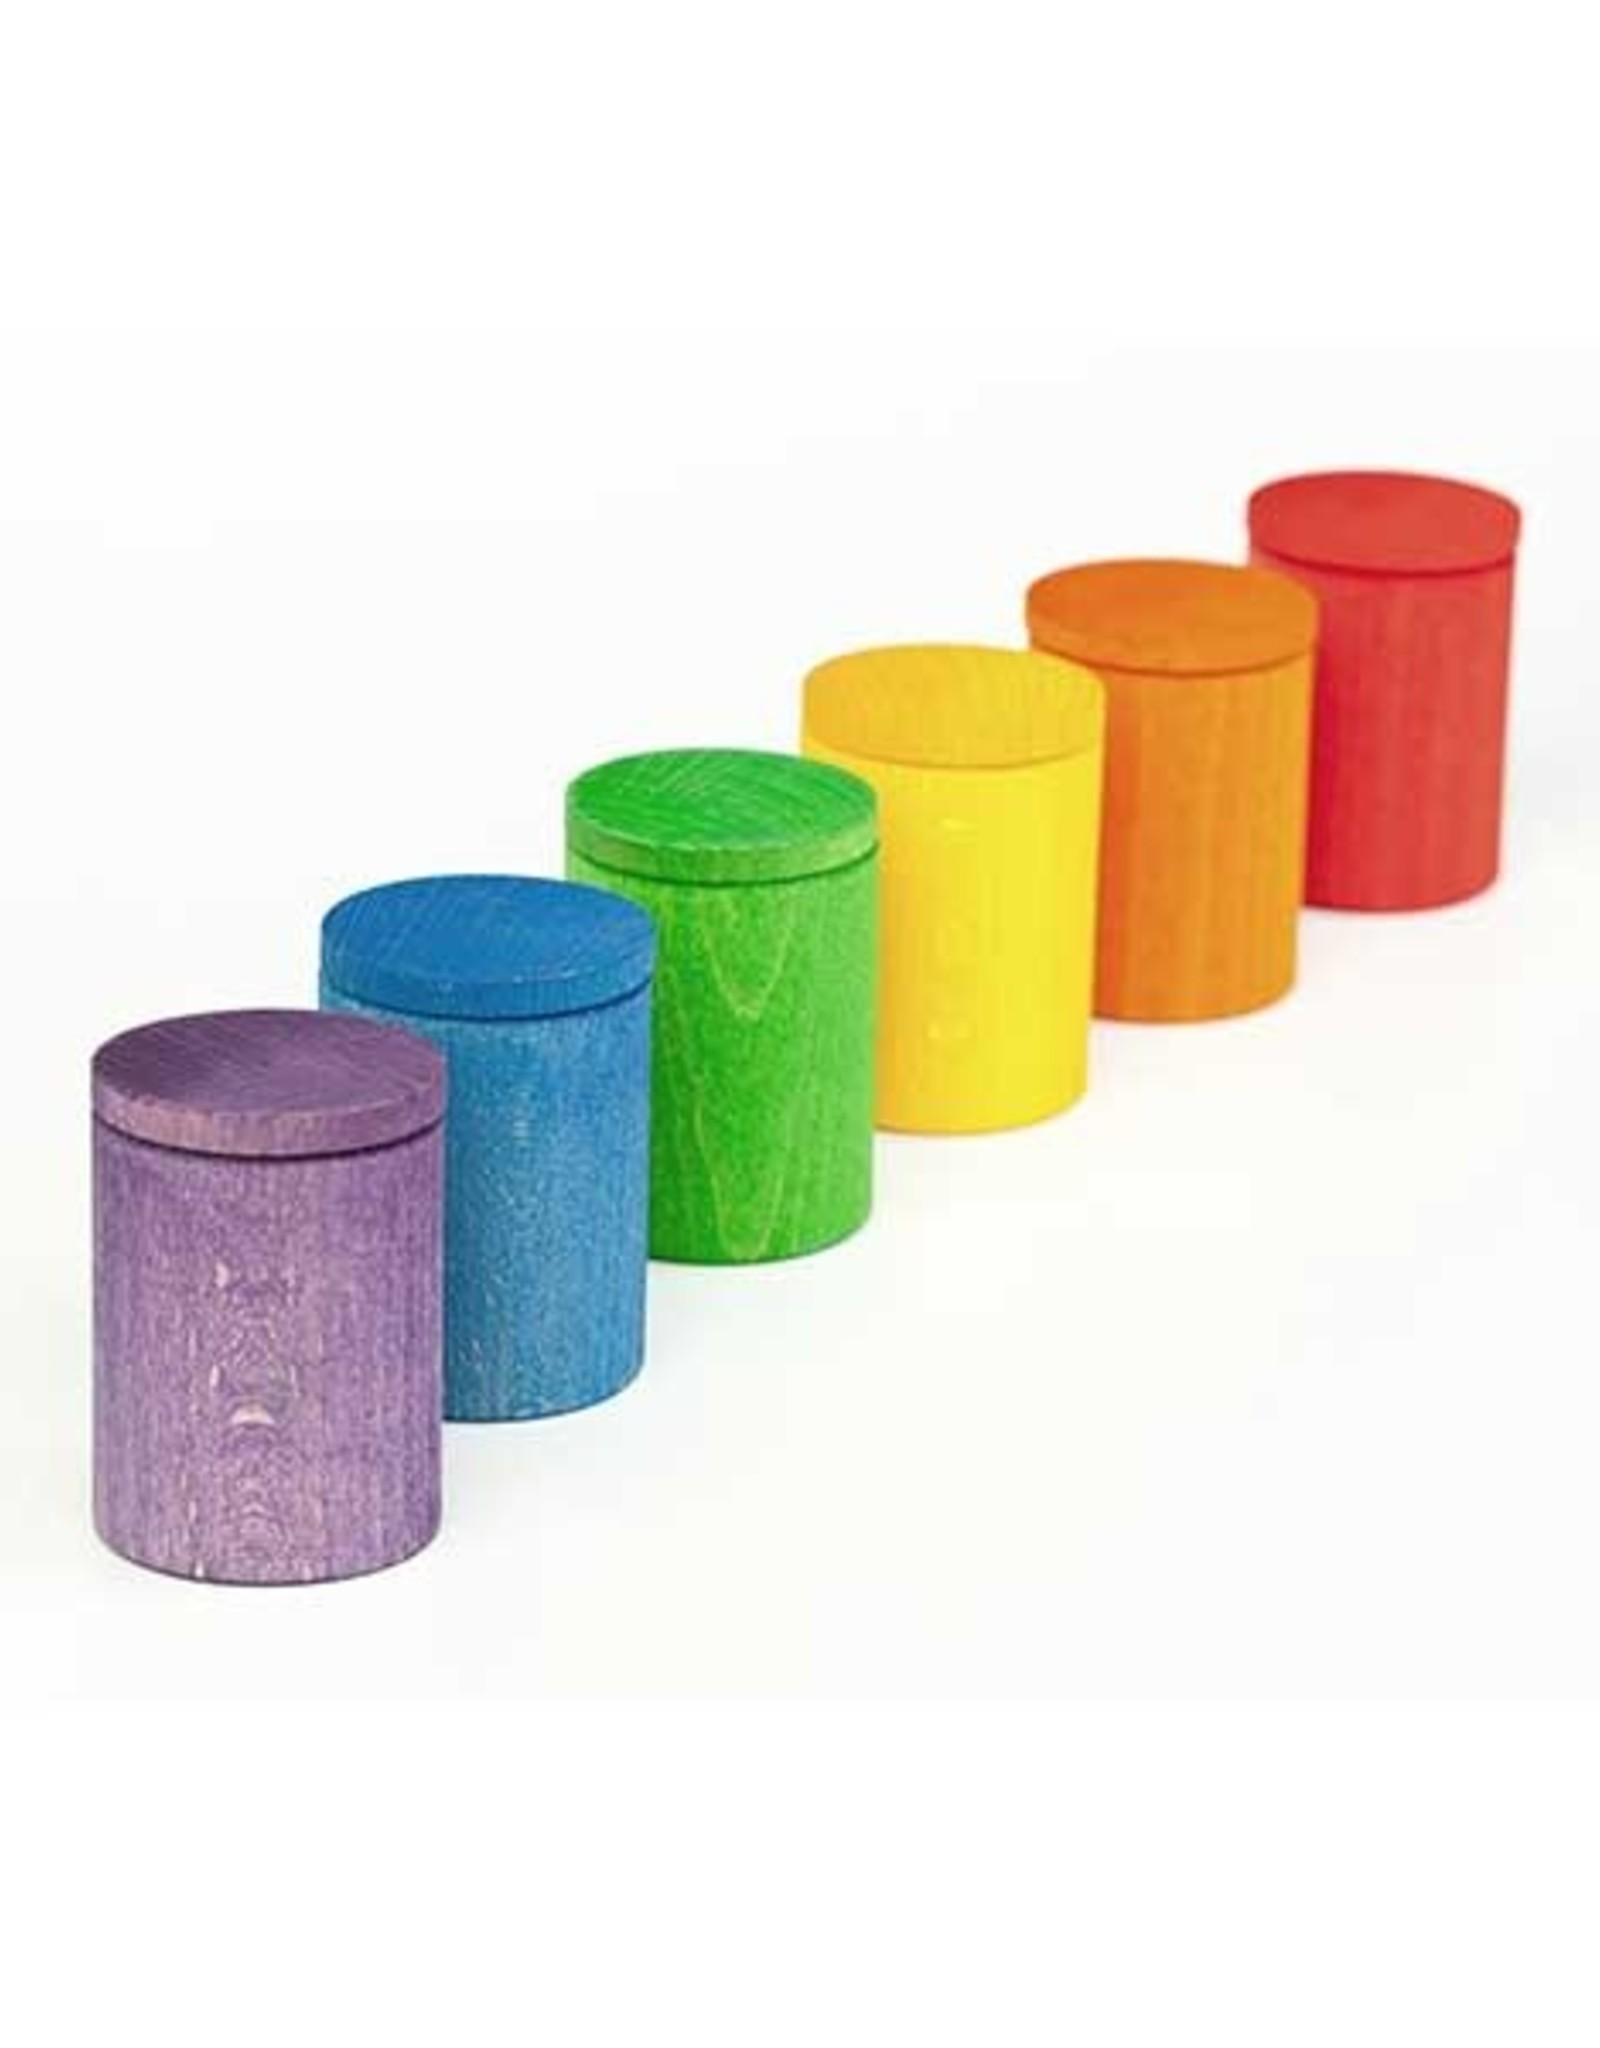 Grapat 6 Colored Cups with Covers